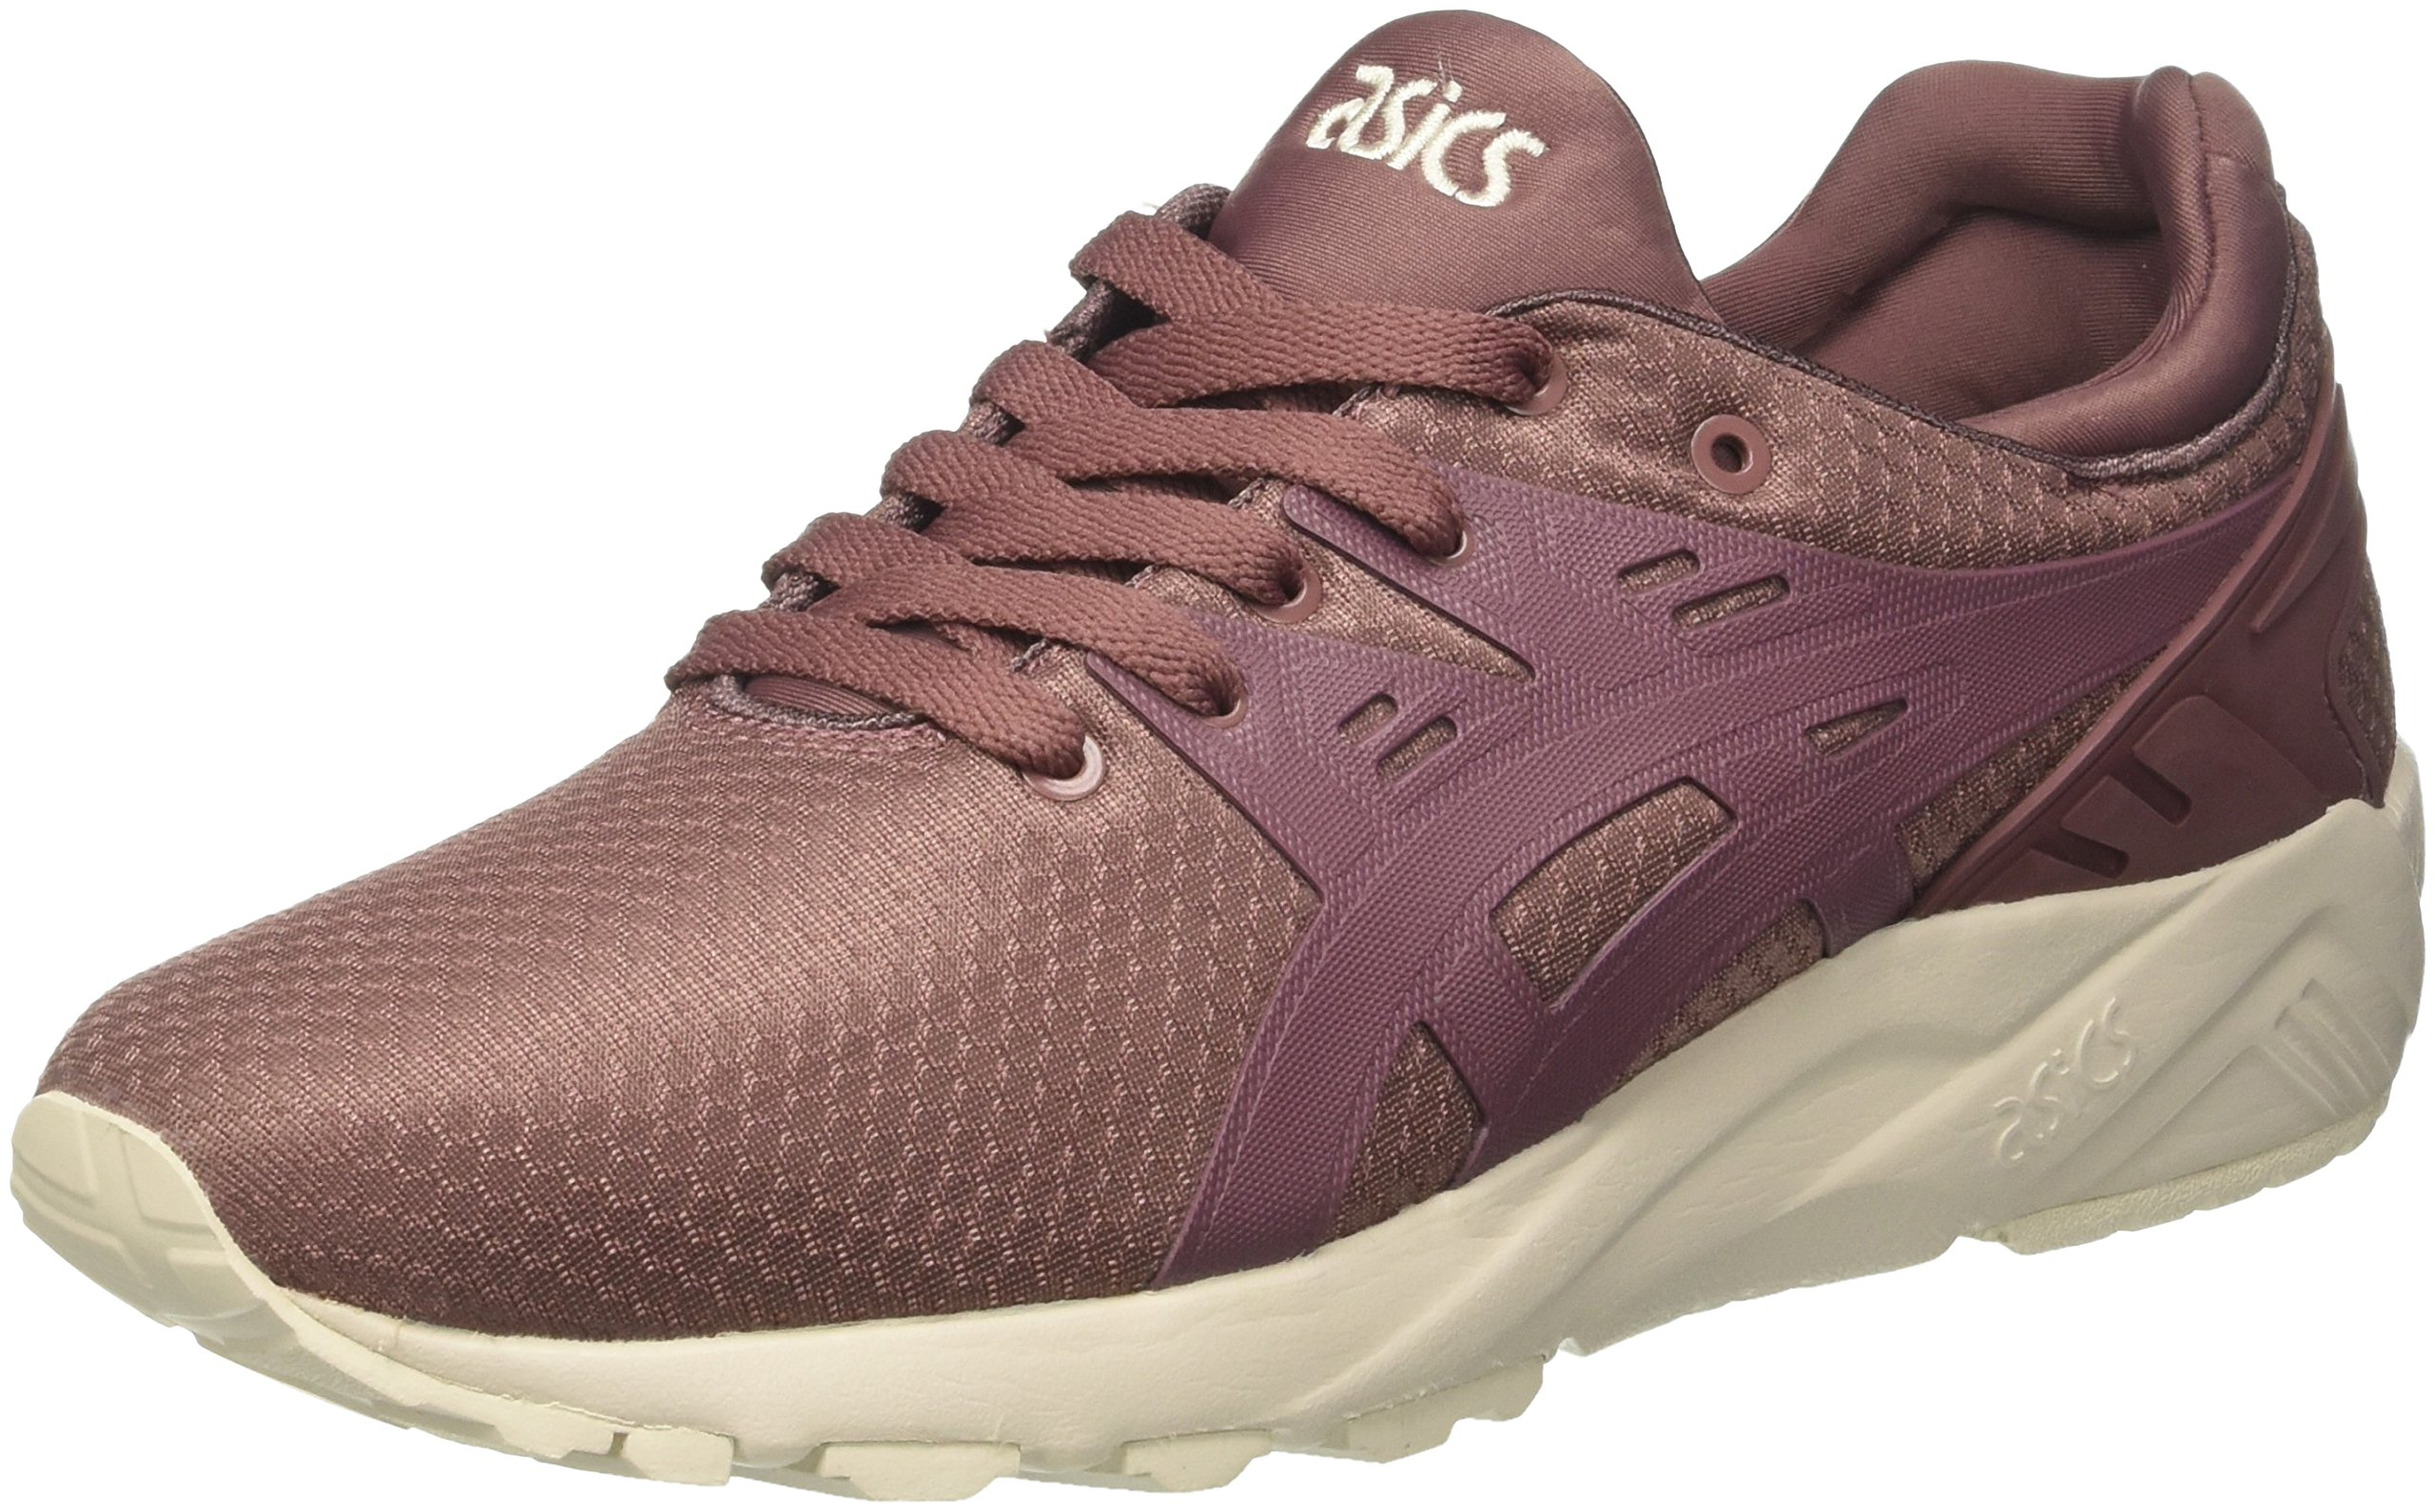 c72df884e202 Galleon - ASICS Men's Gel-Kayano Trainer Evo Low-Top Sneakers, Red (Rose  Taupe/Rose Taupe 2626), 12 UK 48 EU